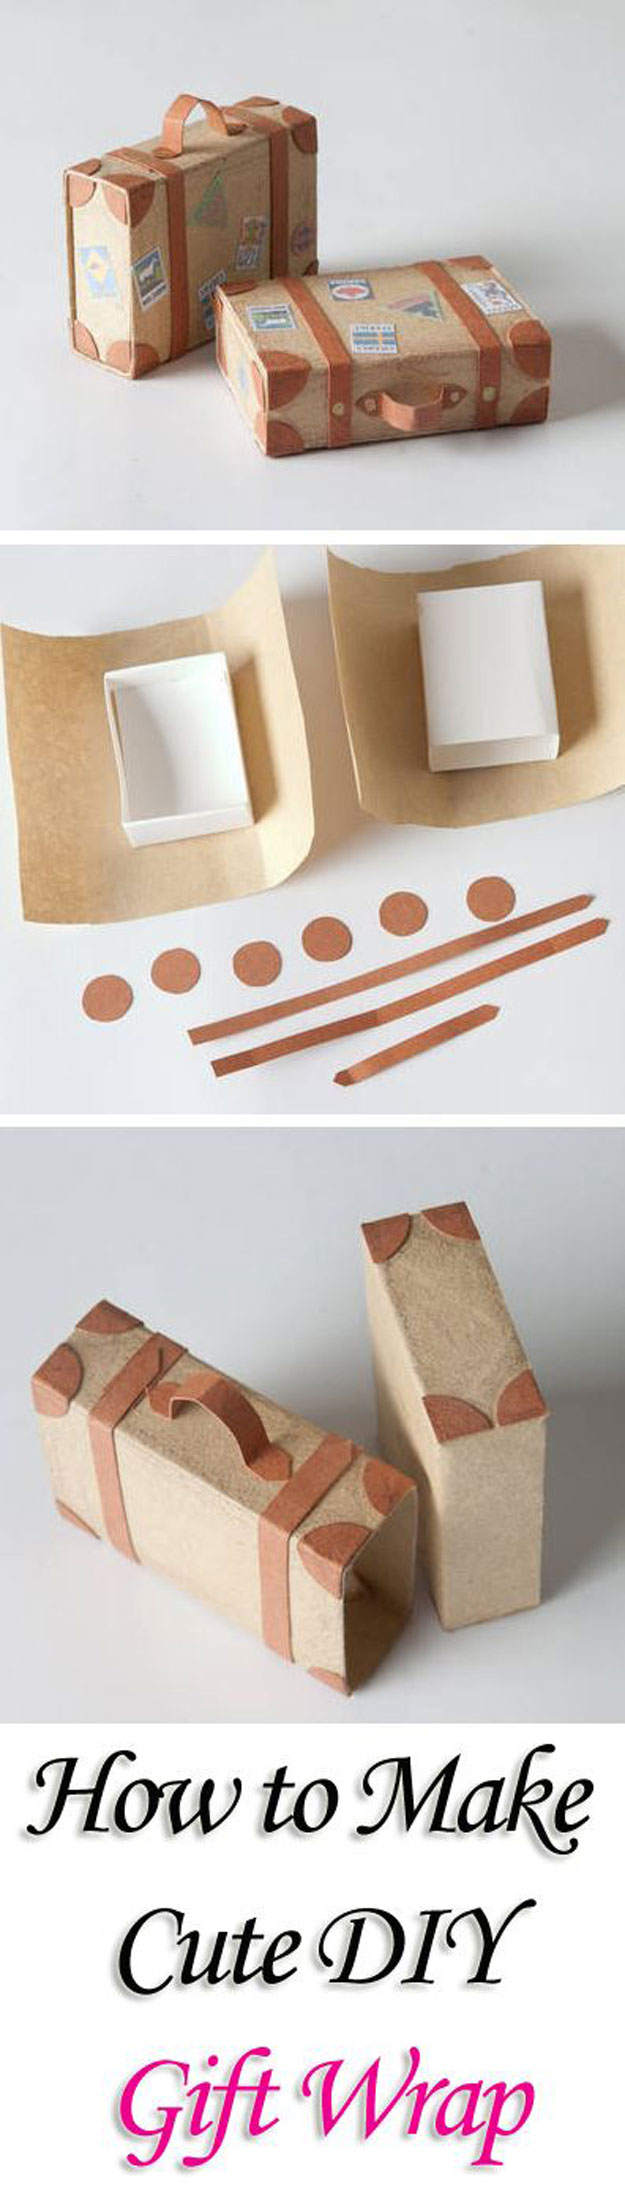 DIY Gift Wrapping Ideas - How To Wrap A Present - Tutorials, Cool Ideas and Instructions | Cute Gift Wrap Ideas for Christmas, Birthdays and Holidays | Tips for Bows and Creative Wrapping Papers | Matchbox-Suitcase-Gift-Wrap #gifts #diys